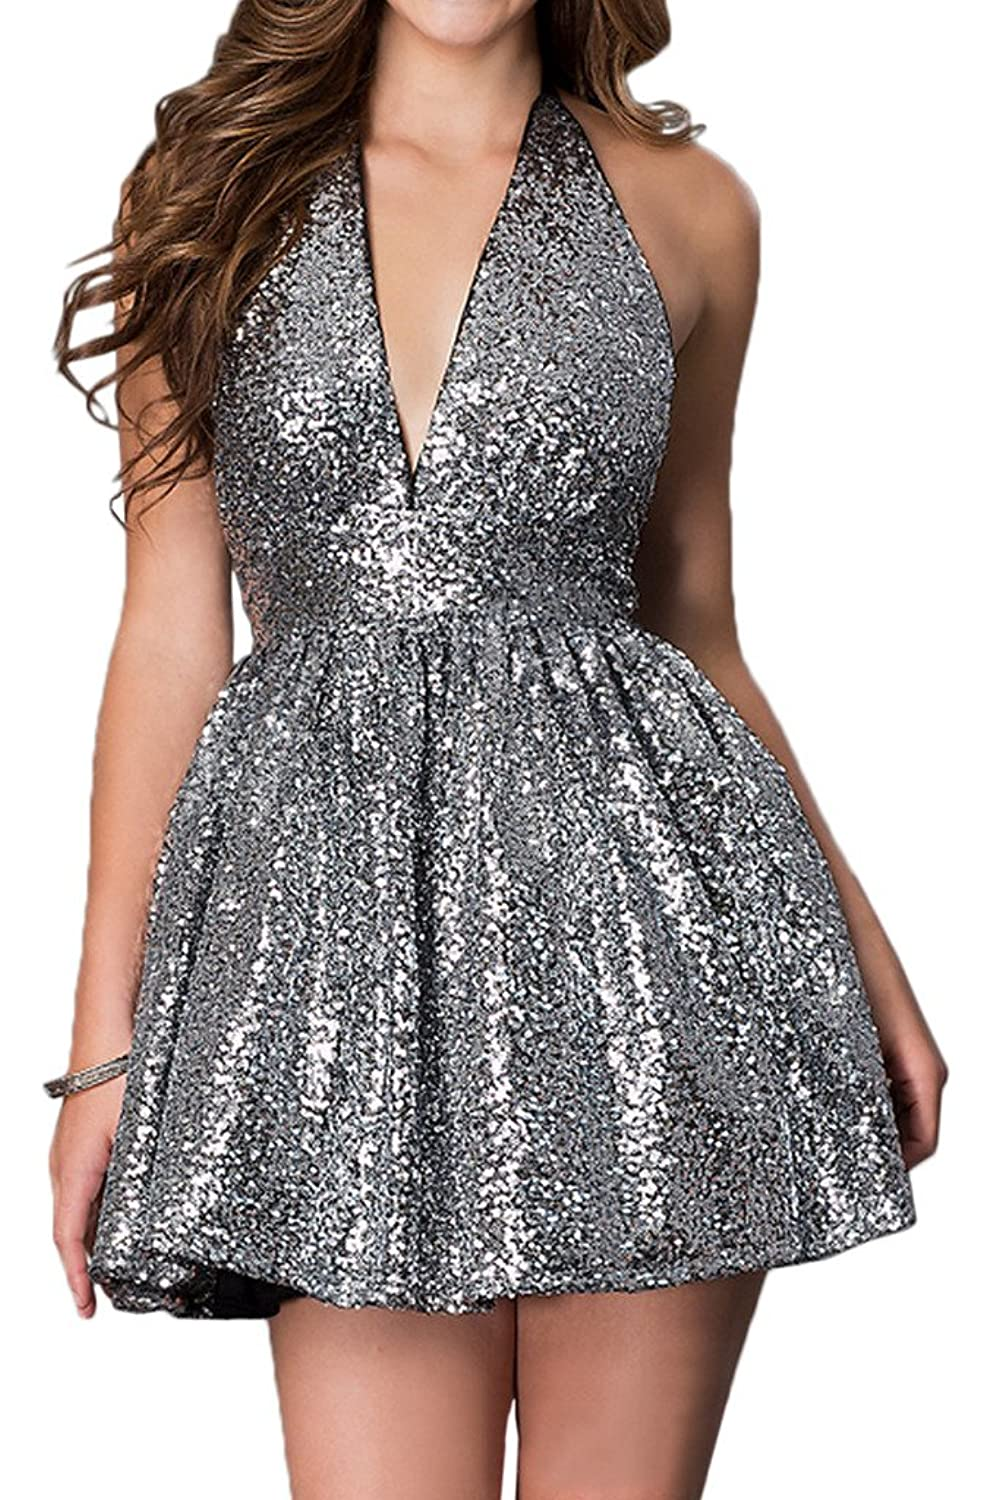 Audrey Bride Sexy Woman's Cocktail Dresses Sequins Party Dresses for Night